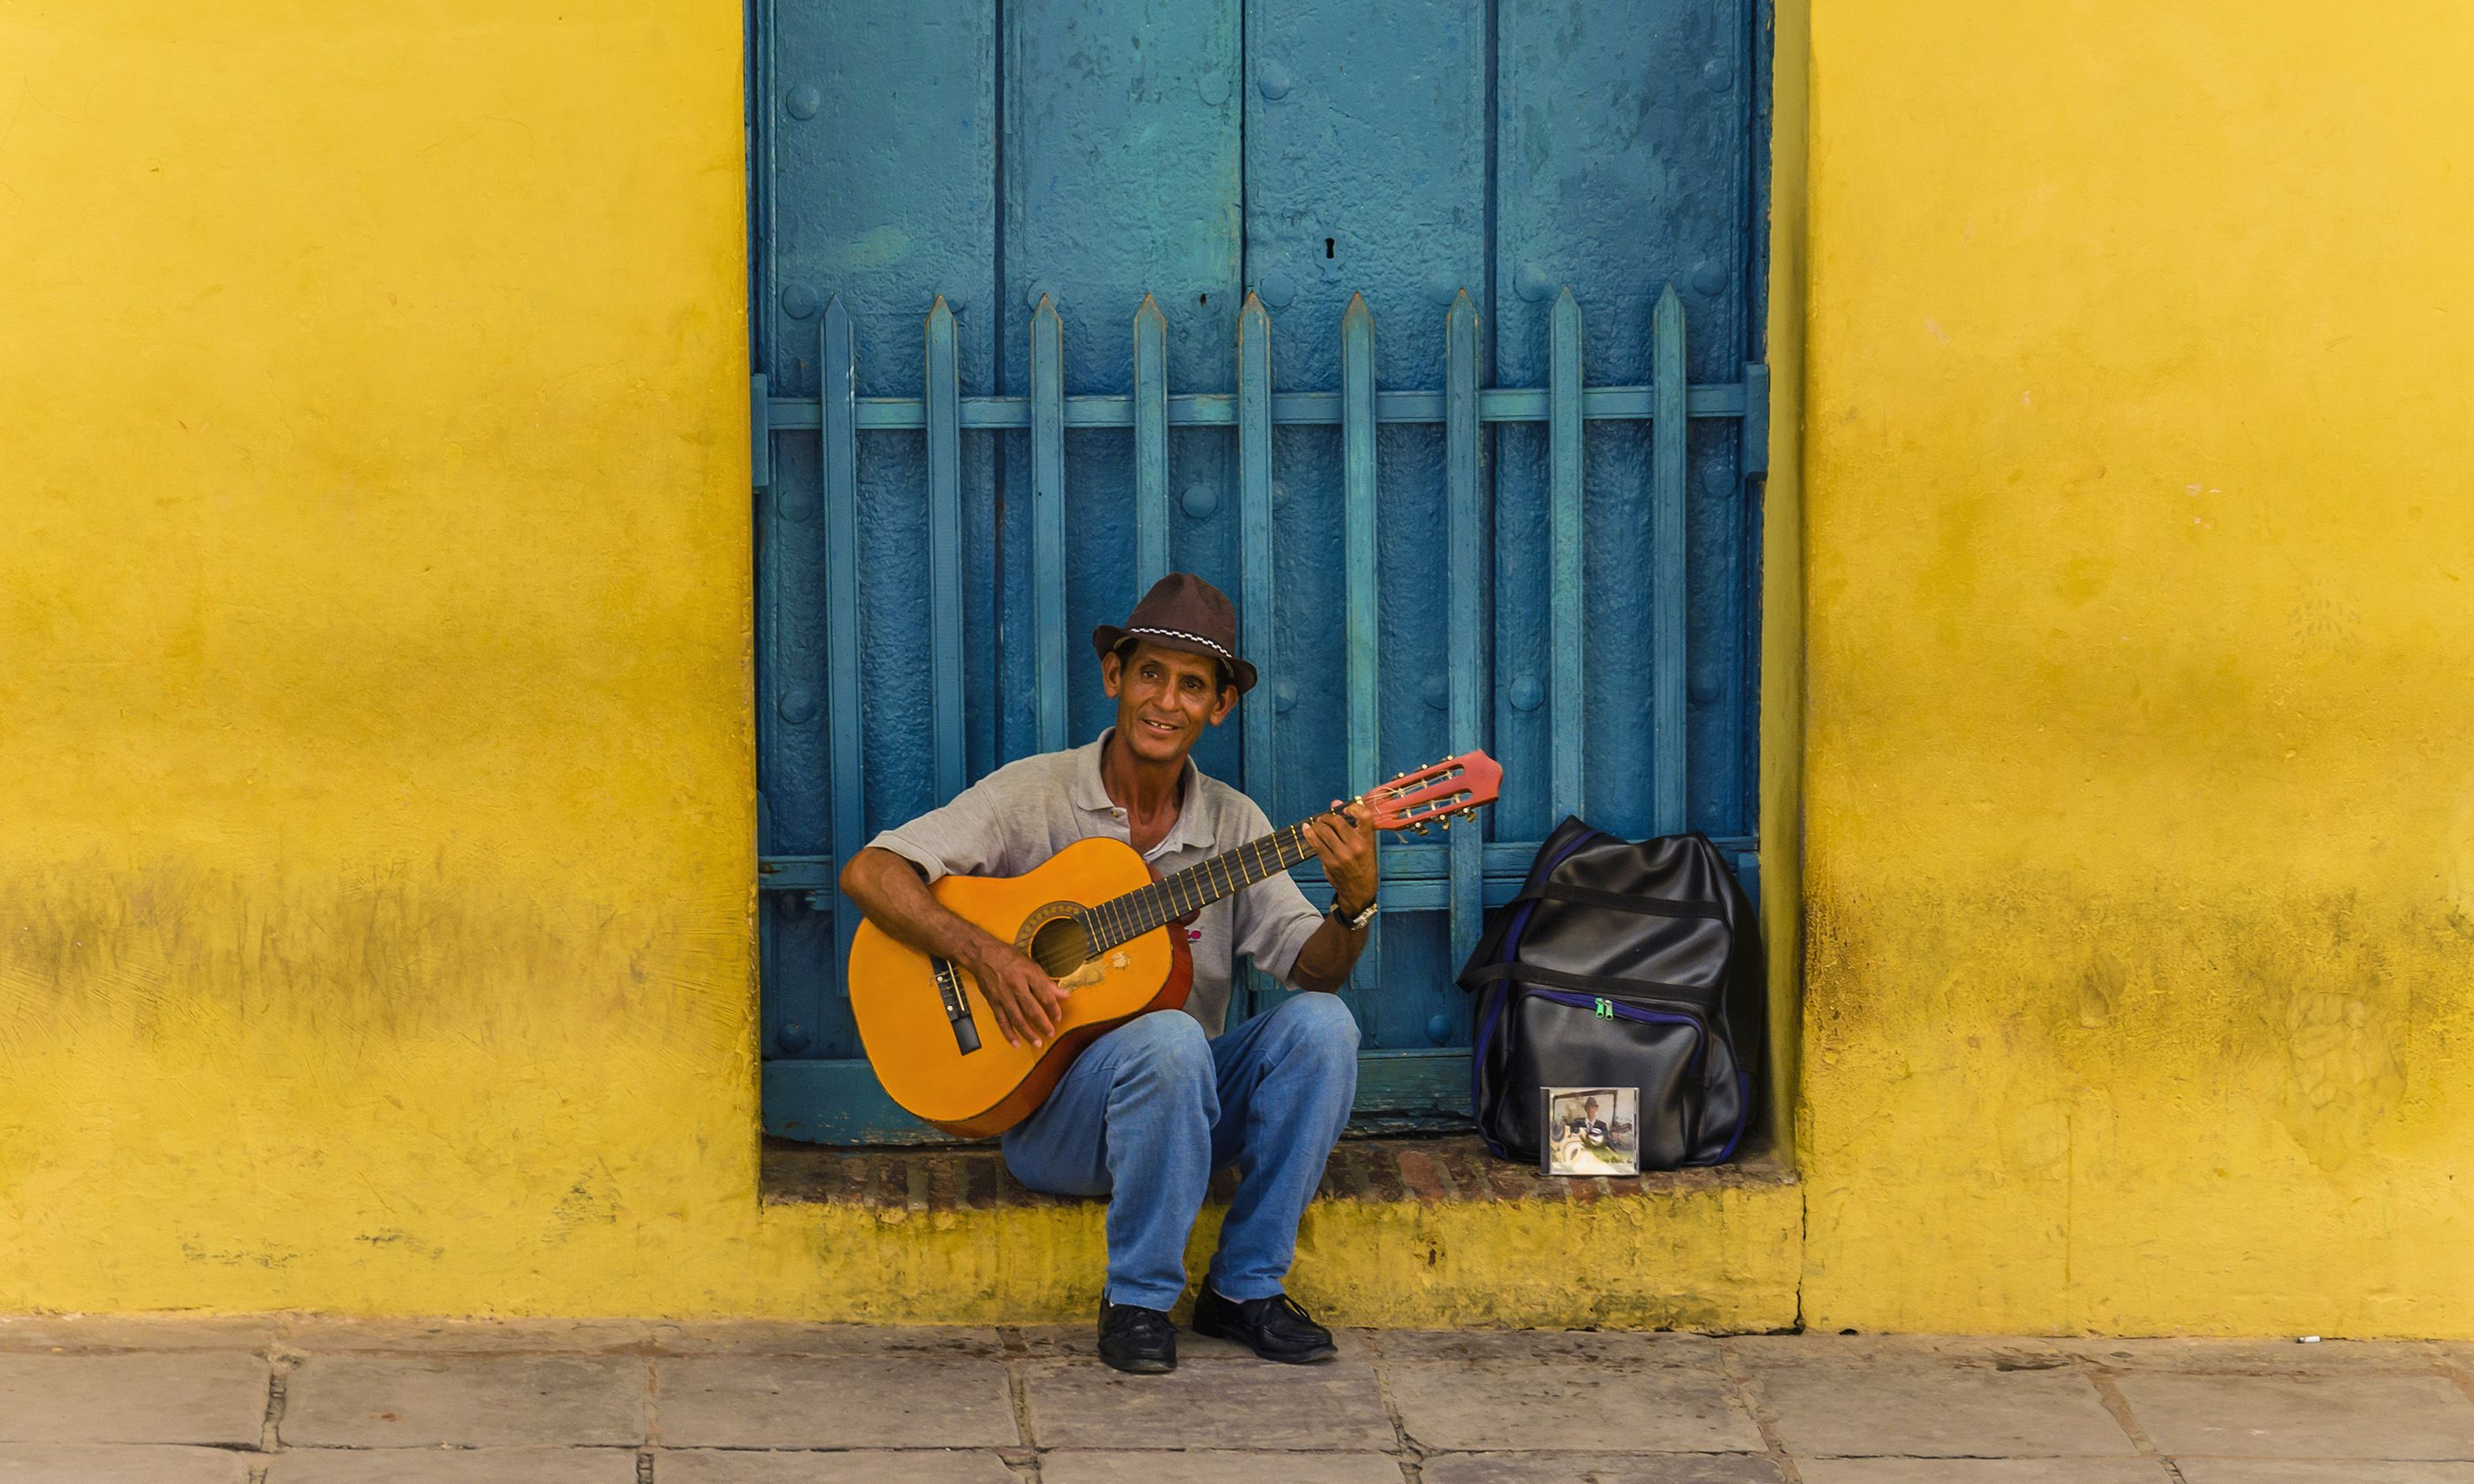 Man playing guitar in Trinidad, Cuba. From Shutterstock.com